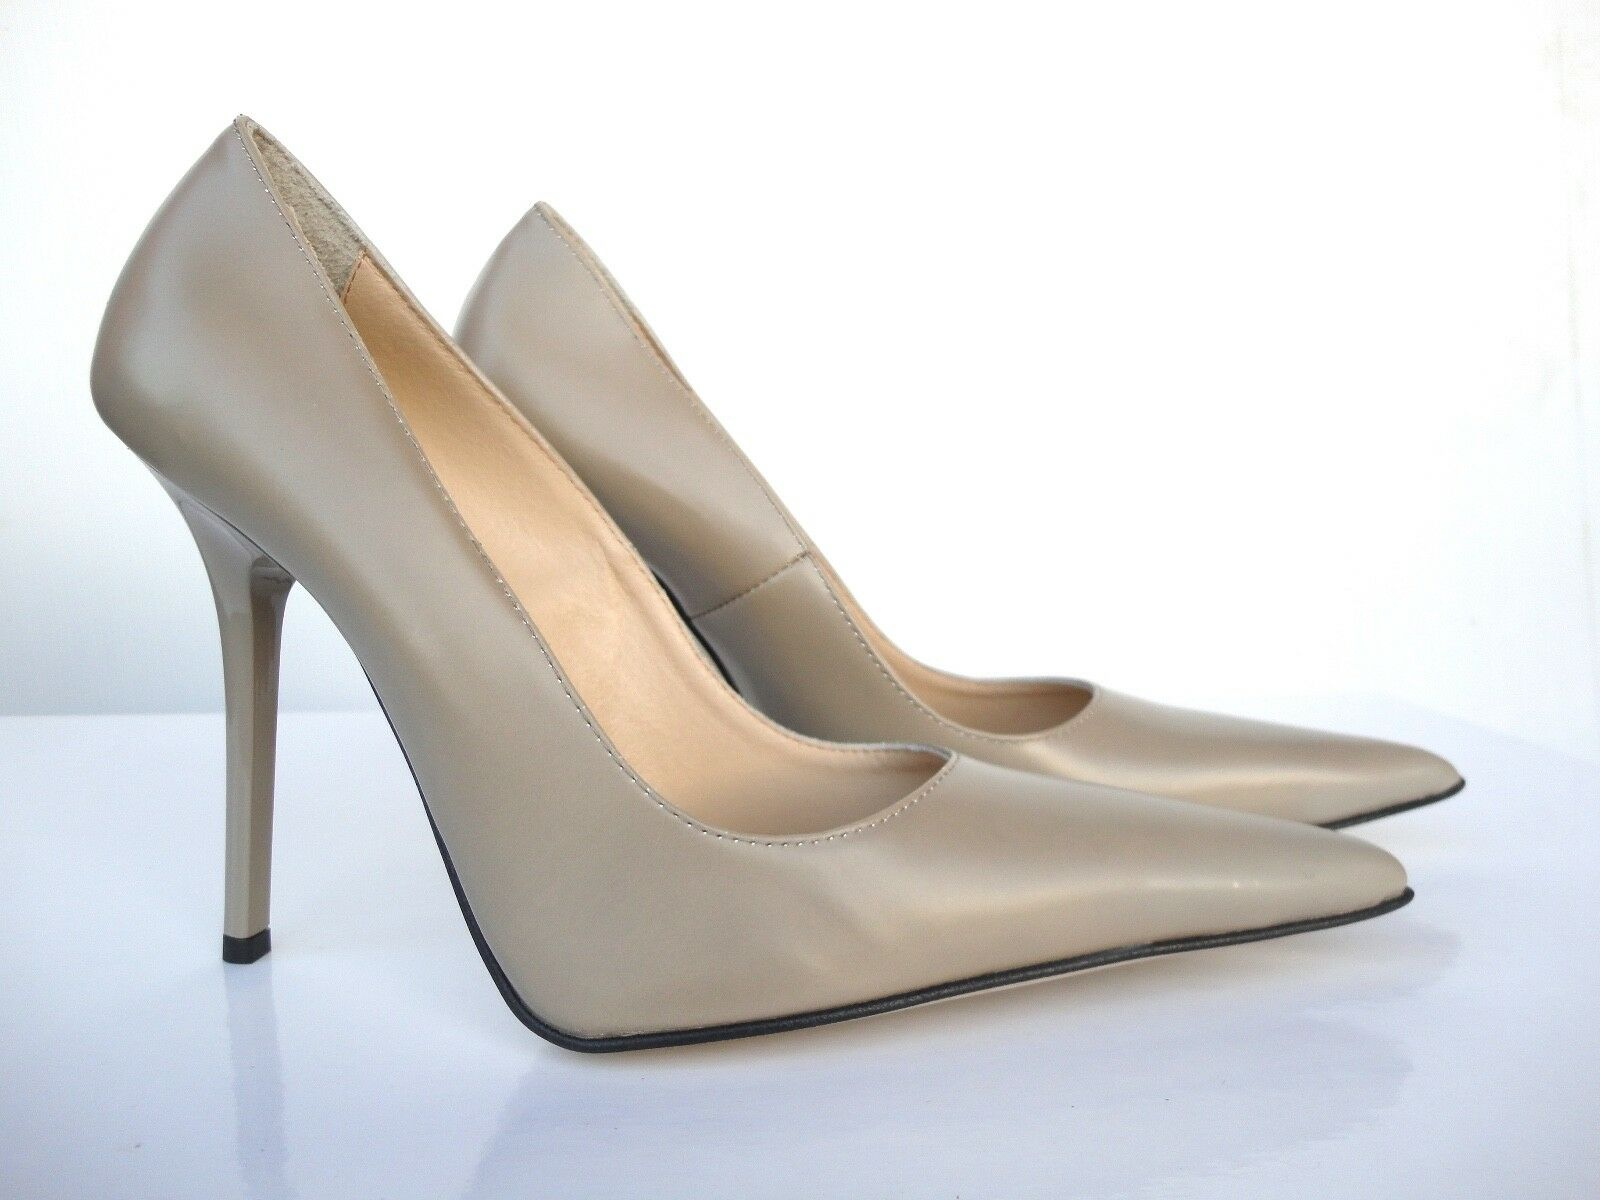 GIOHEL ITALY DECOLTE HIGH HEELS POINTY TOE PUMPS SCHUHE LEATHER DECOLTE ITALY BEIGE NUDE 39 e0d6d1